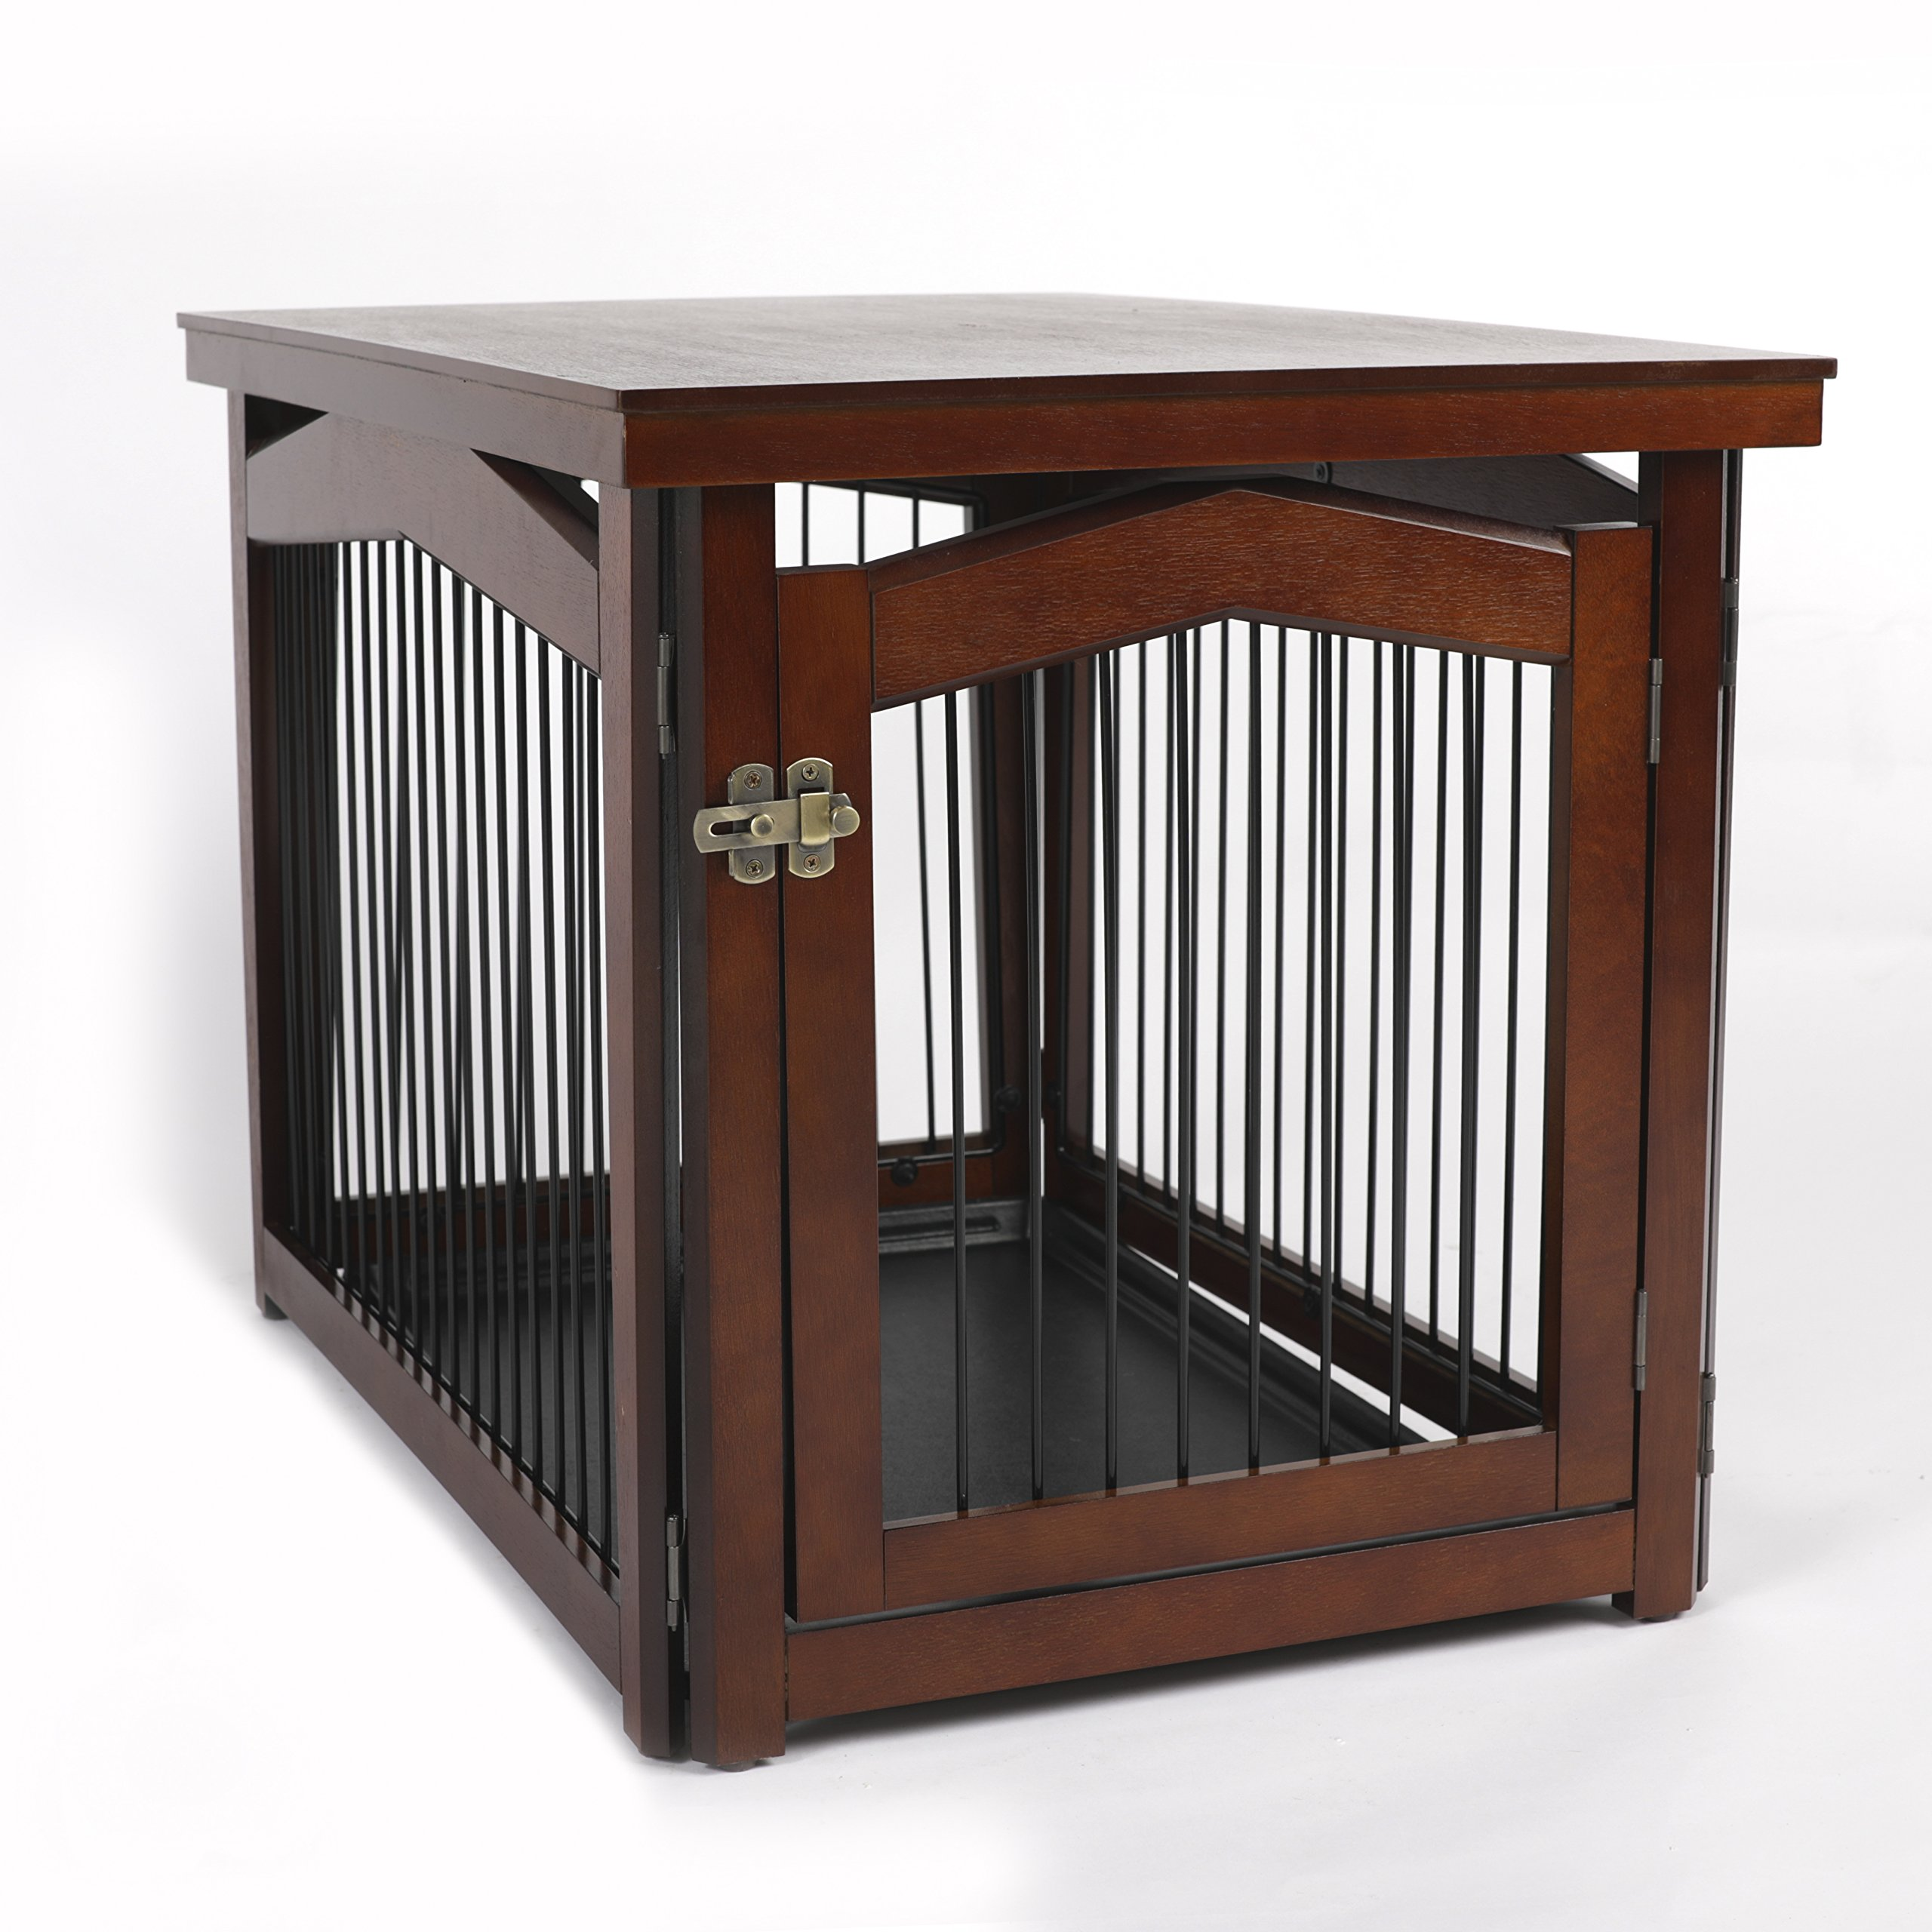 Merry Pet 2-in-1 Configurable Pet Crate and Gate, Brown, Large by Merry Pet